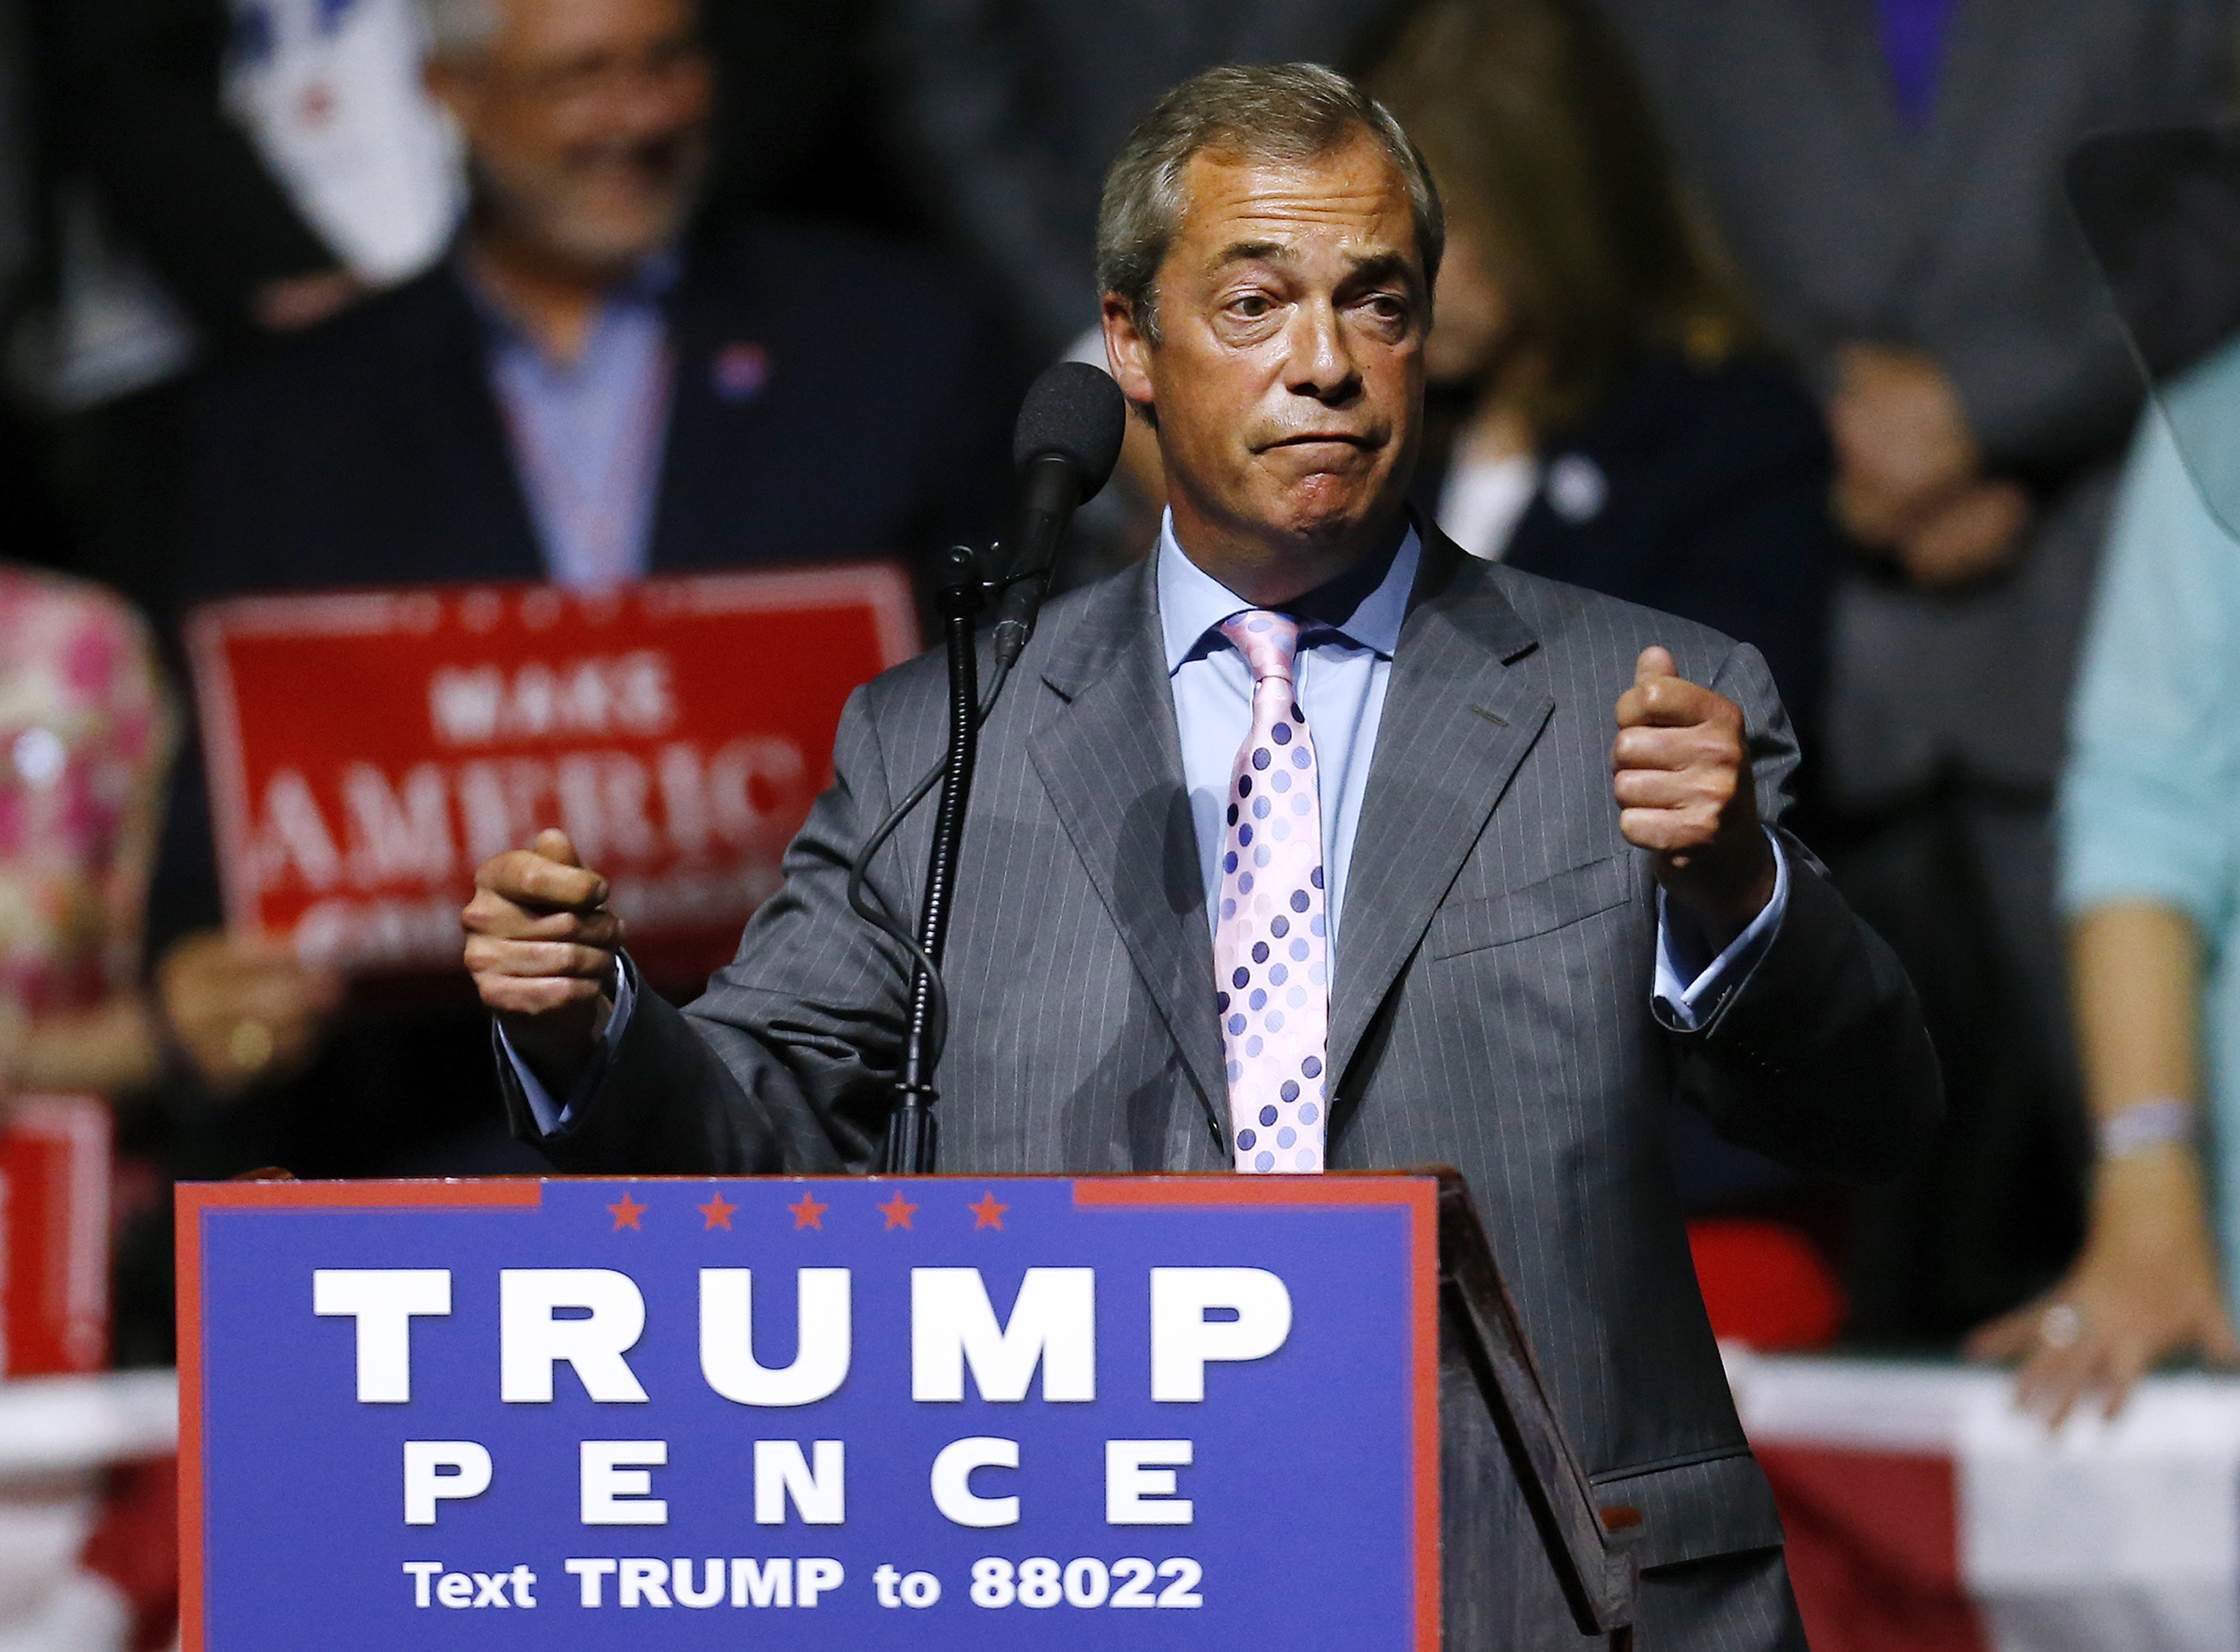 U.K. politician Nigel Farage speaks during a campaign rally for Republican Presidential nominee Donald Trump in Jackson, Mississippi on August 24, 2016